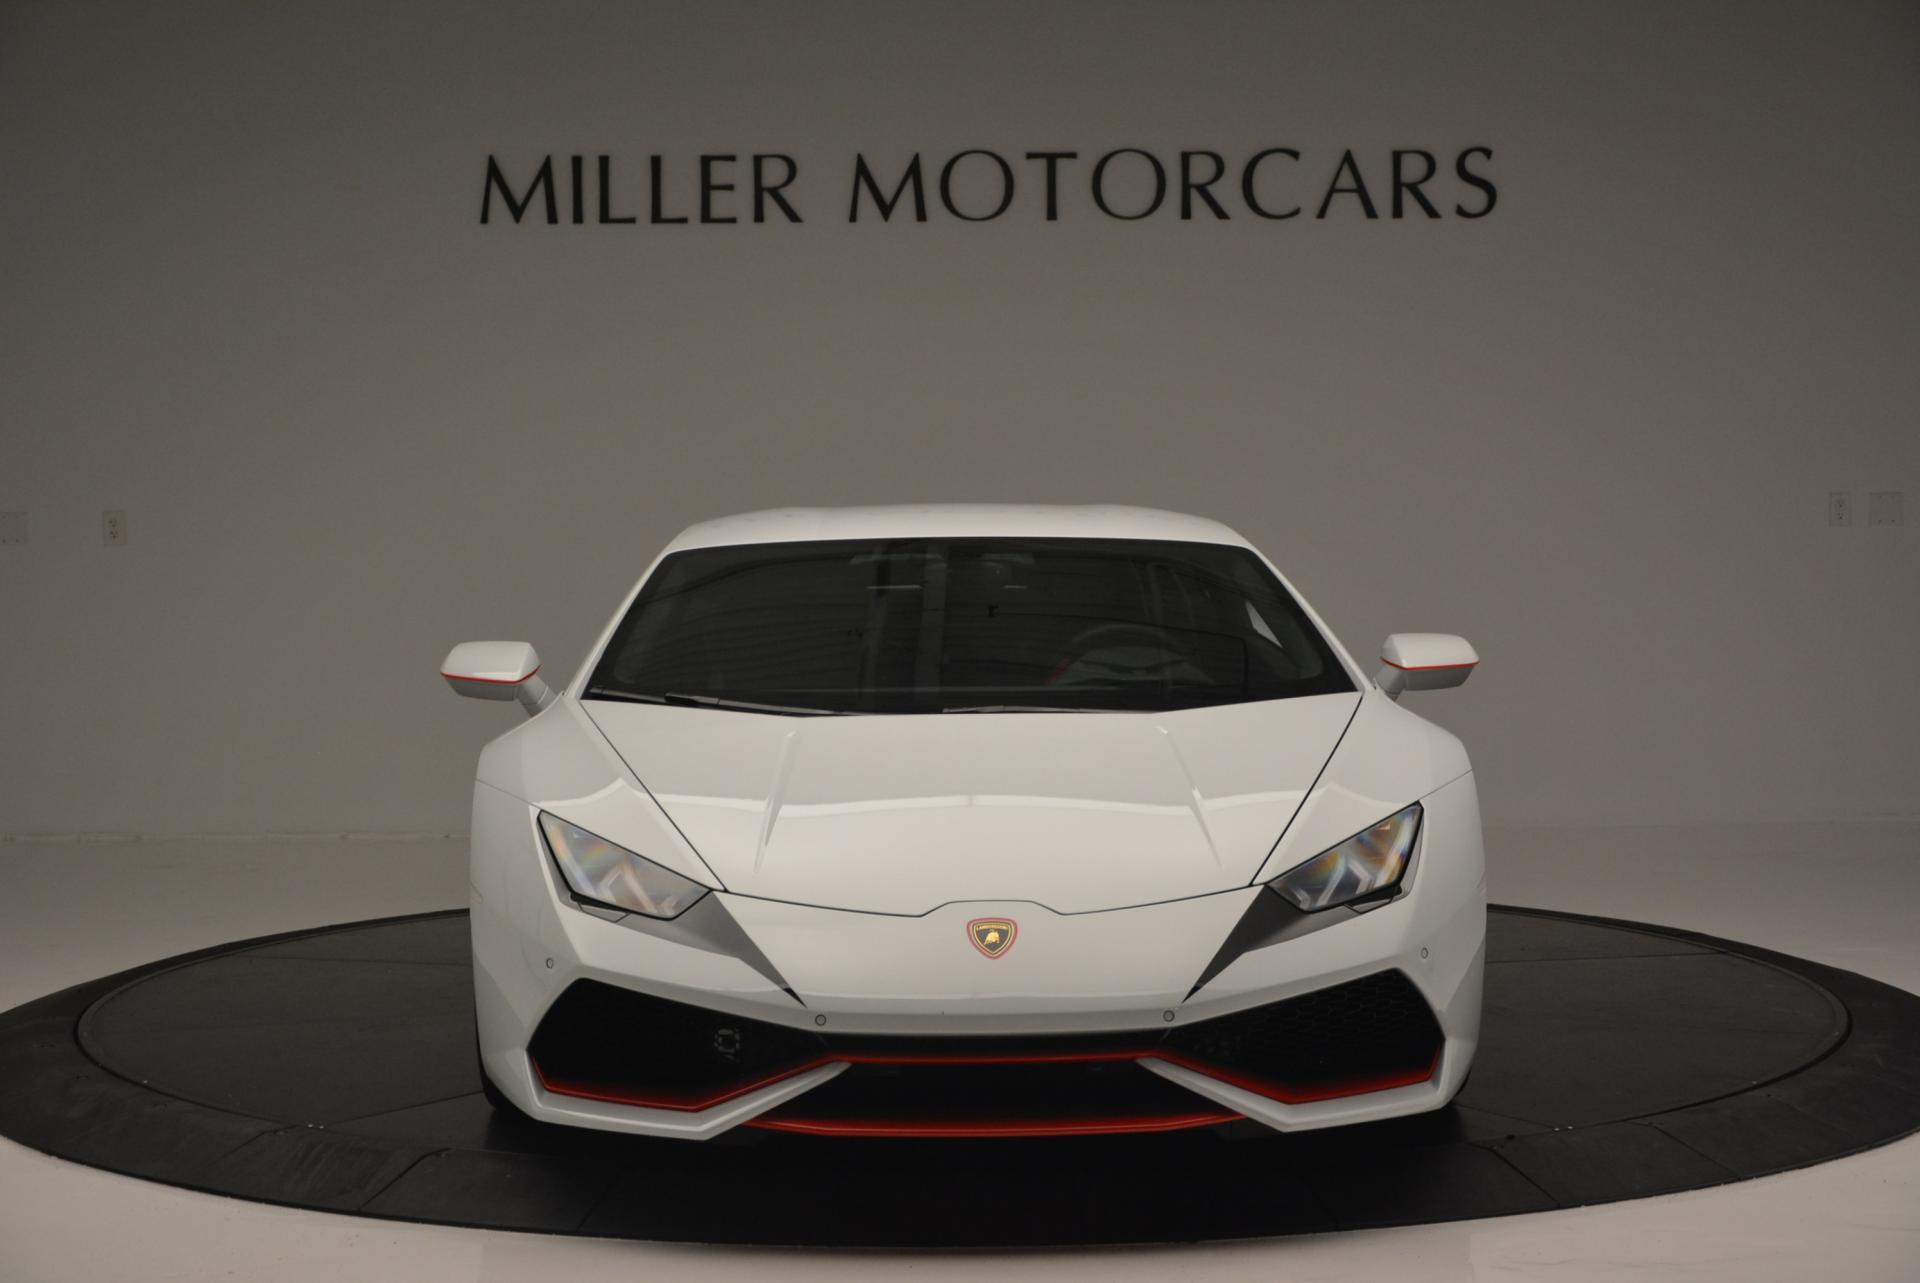 Used 2015 Lamborghini Huracan LP610-4 For Sale In Greenwich, CT 114_p8